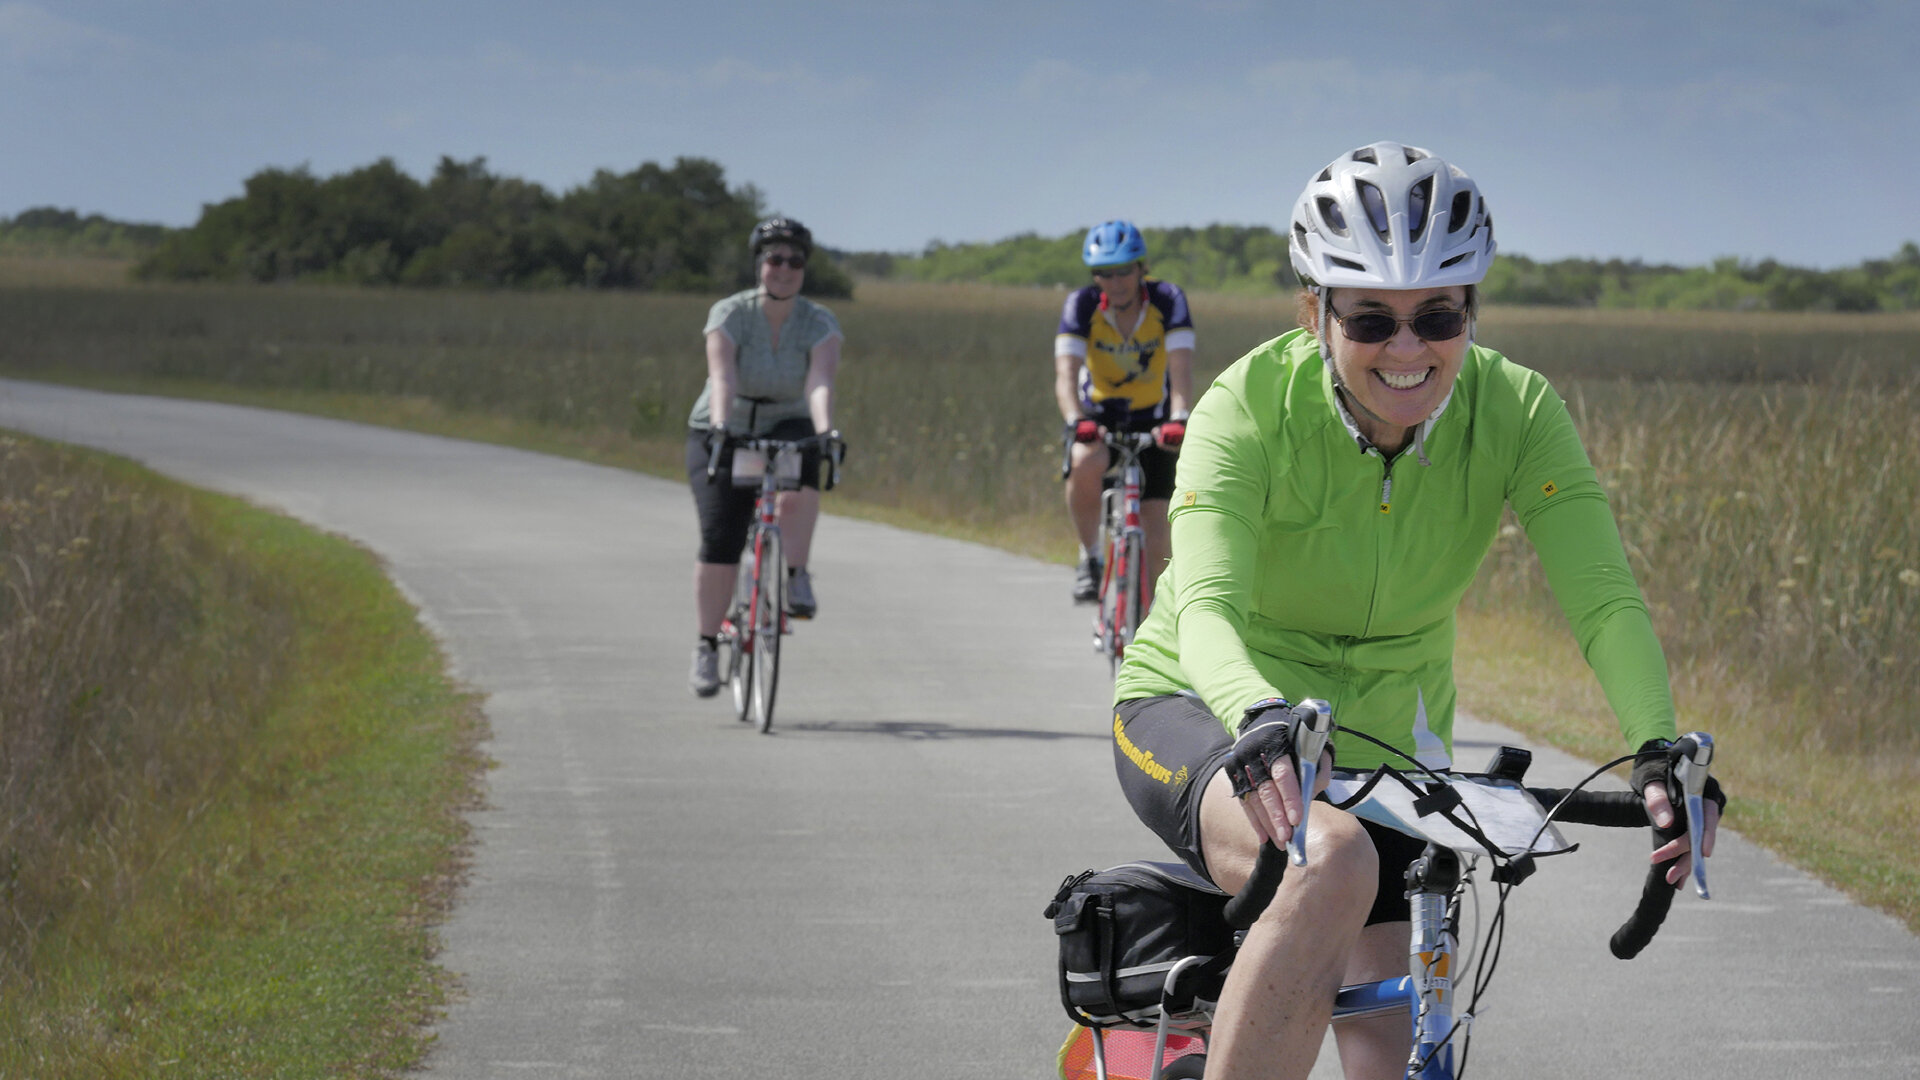 Three women ride bikes on a bicycle path in Everglades National Park on our Florida bike tour.